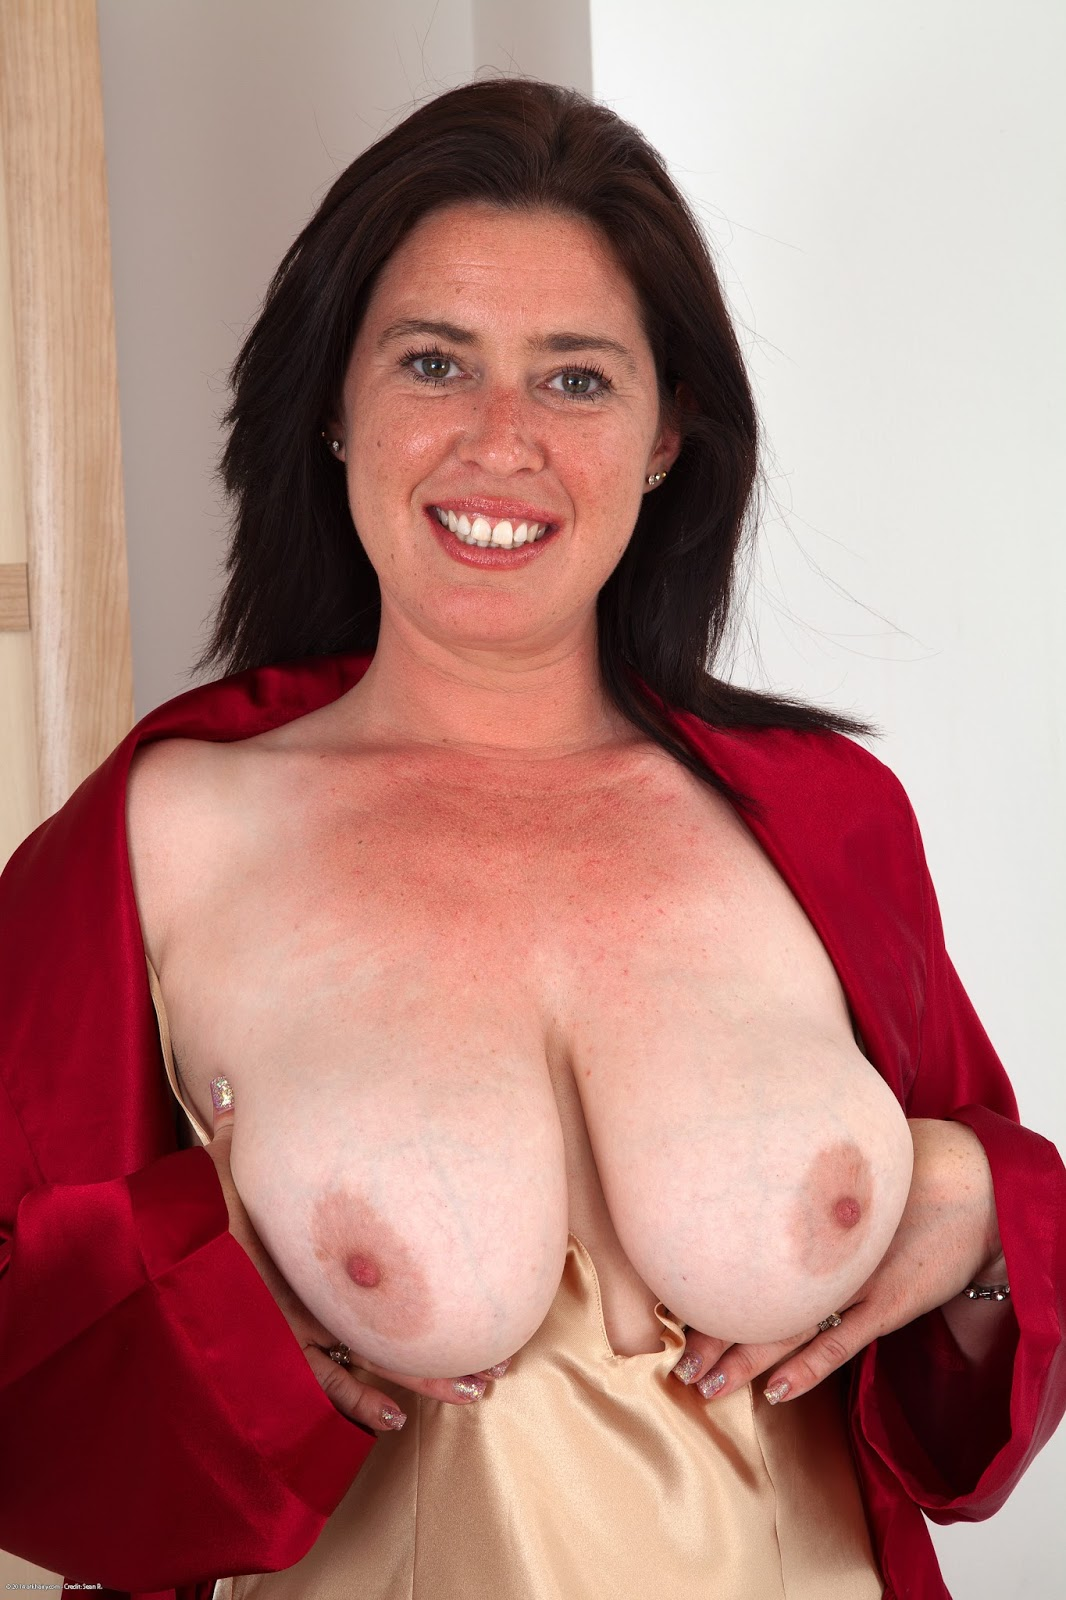 Mature cinna page gets naked in the kitchen 2